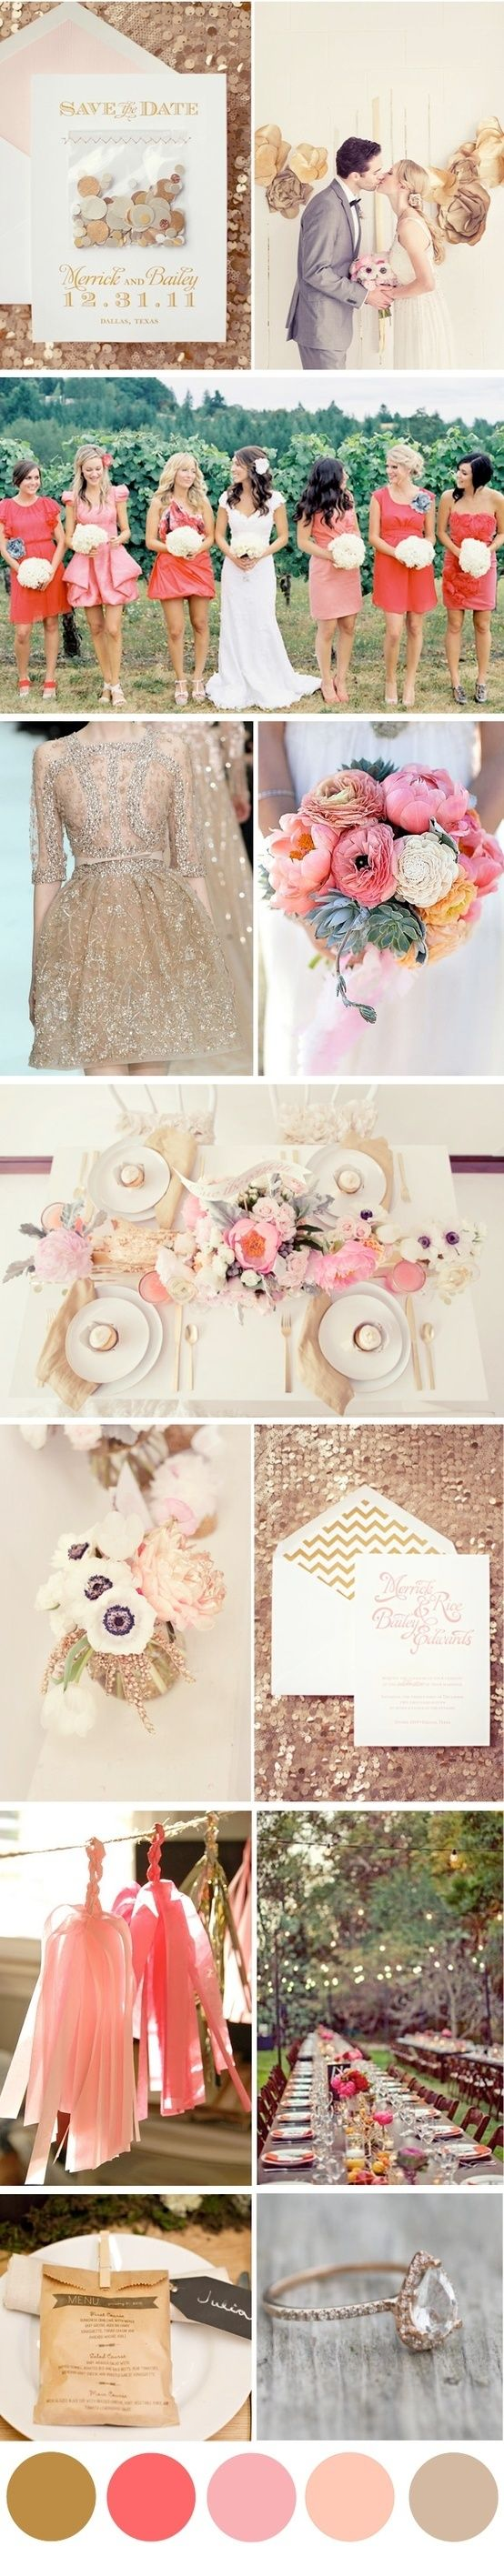 Love the color palate! Its pretty much the color palate of what you wanted!